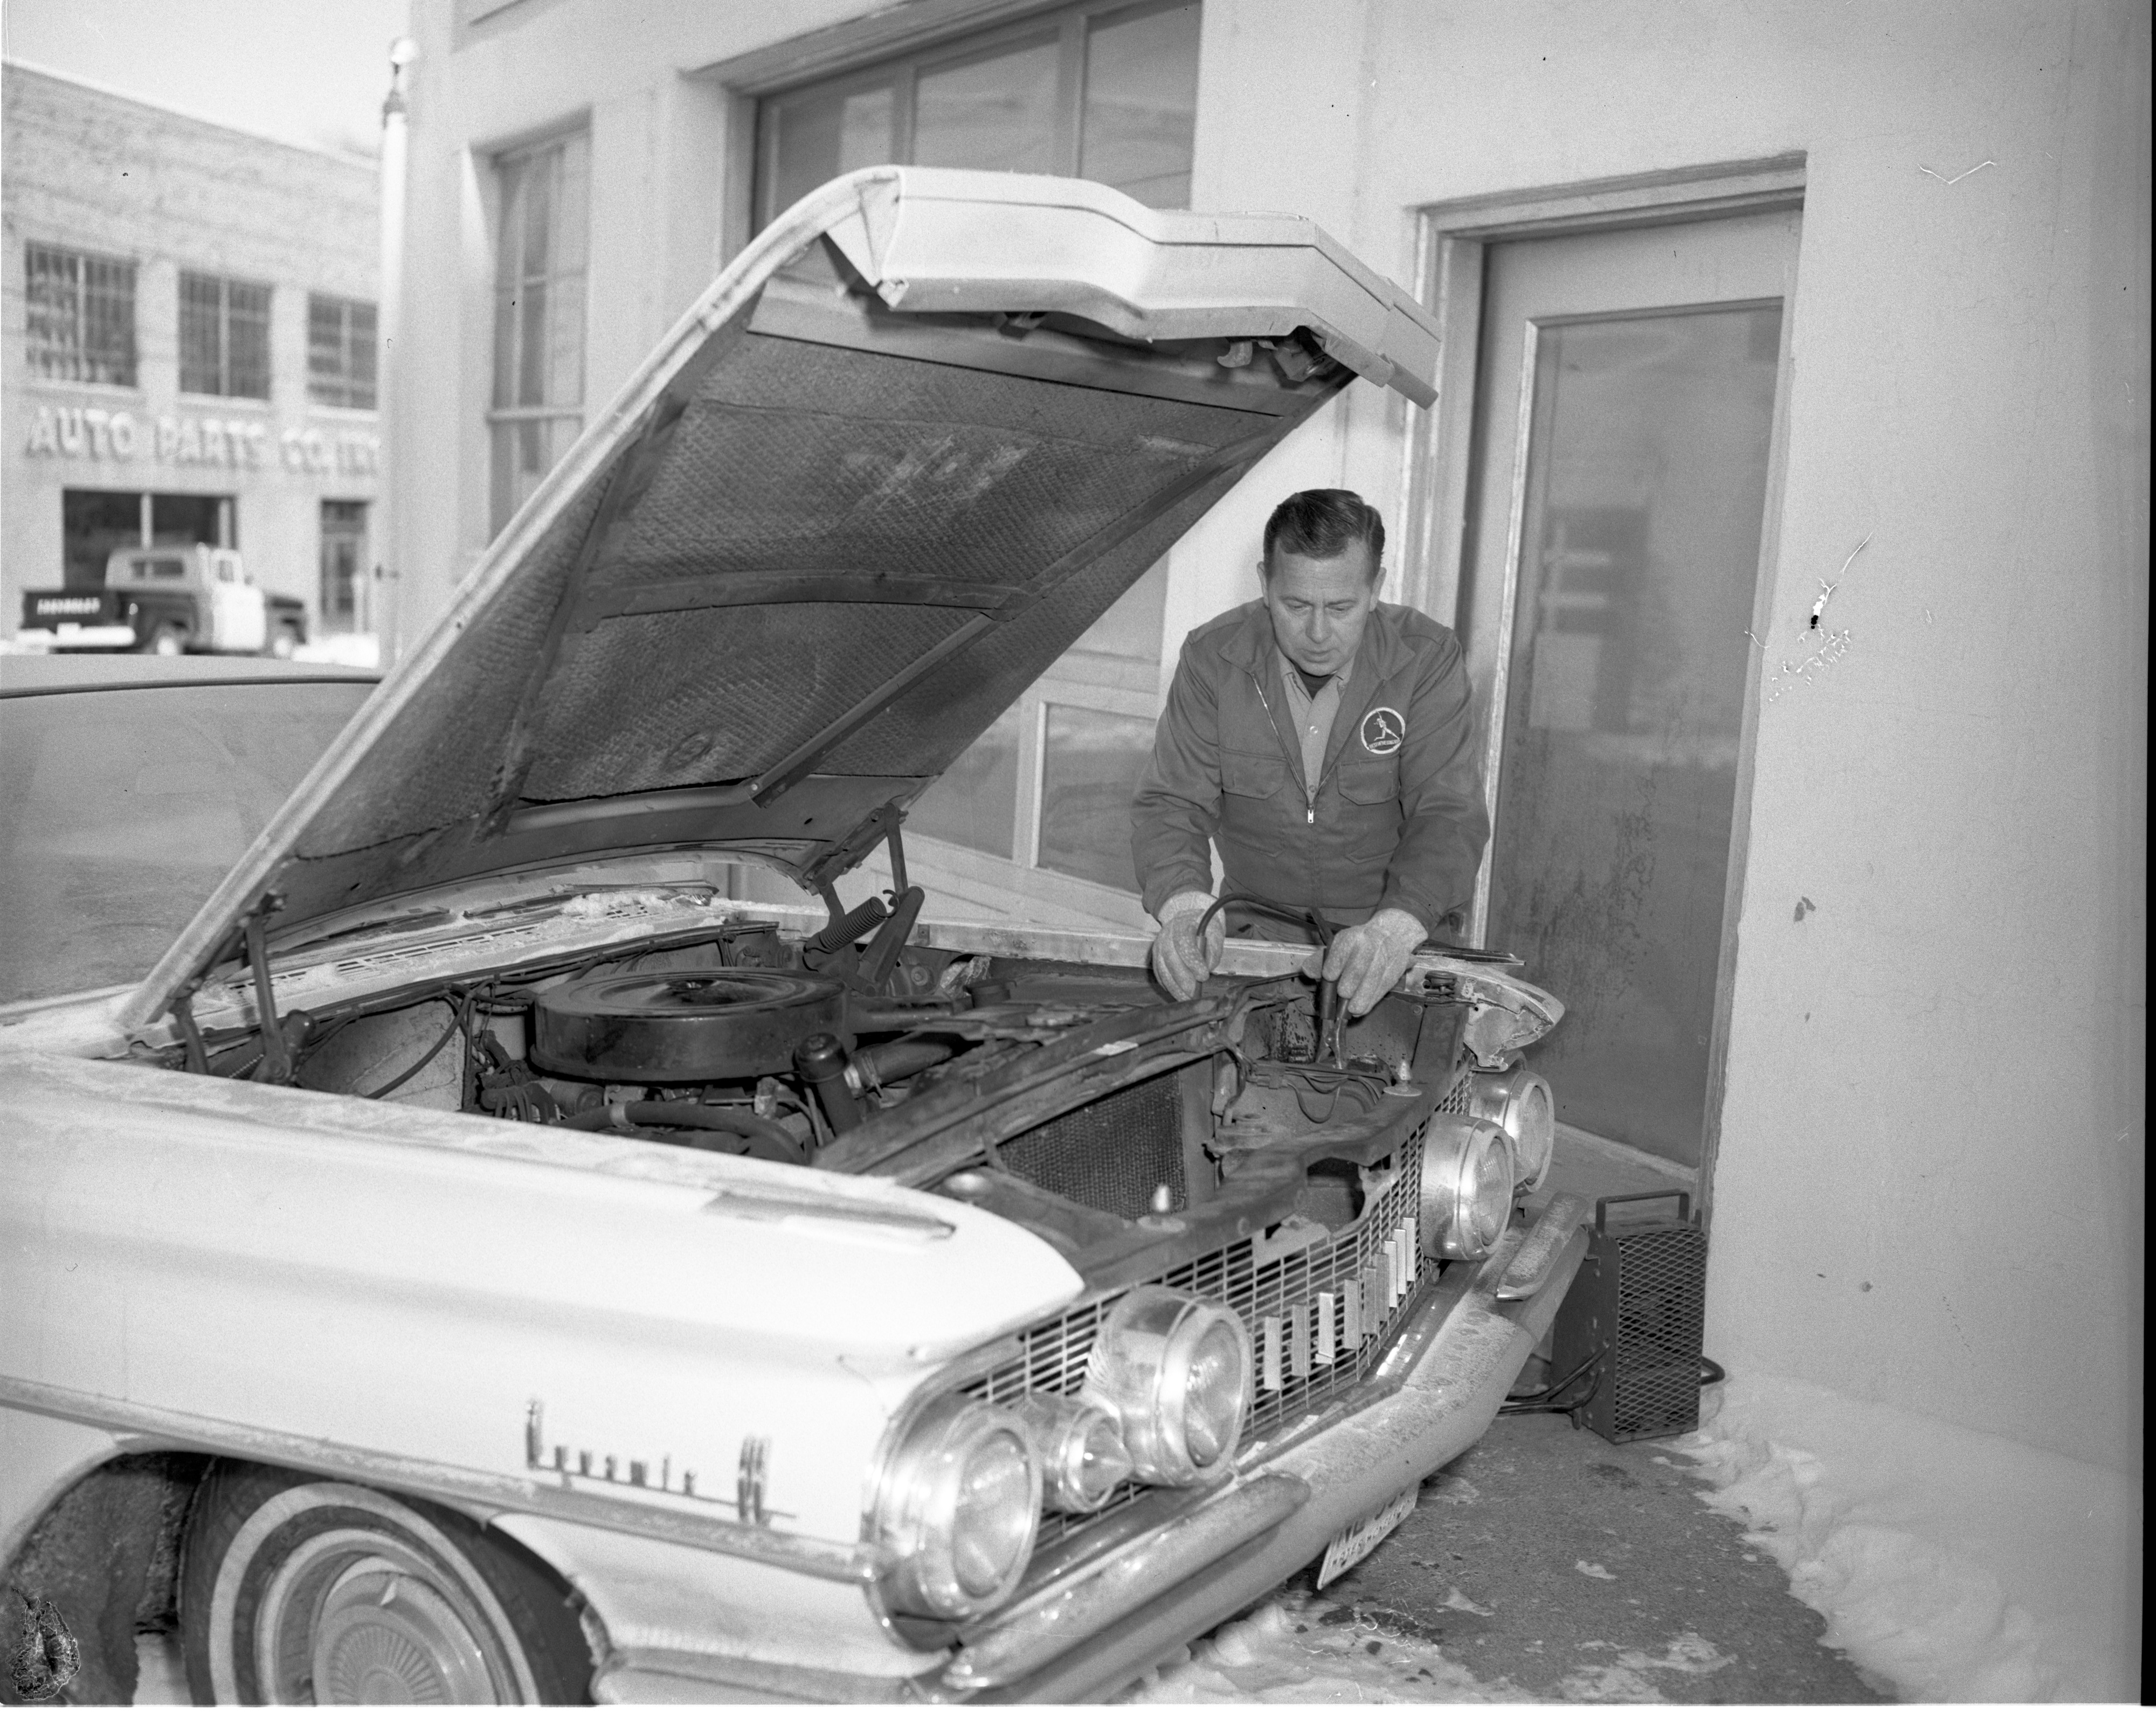 Bill Sprentall Charges A Battery At Sprentall's Service, January 1963 image